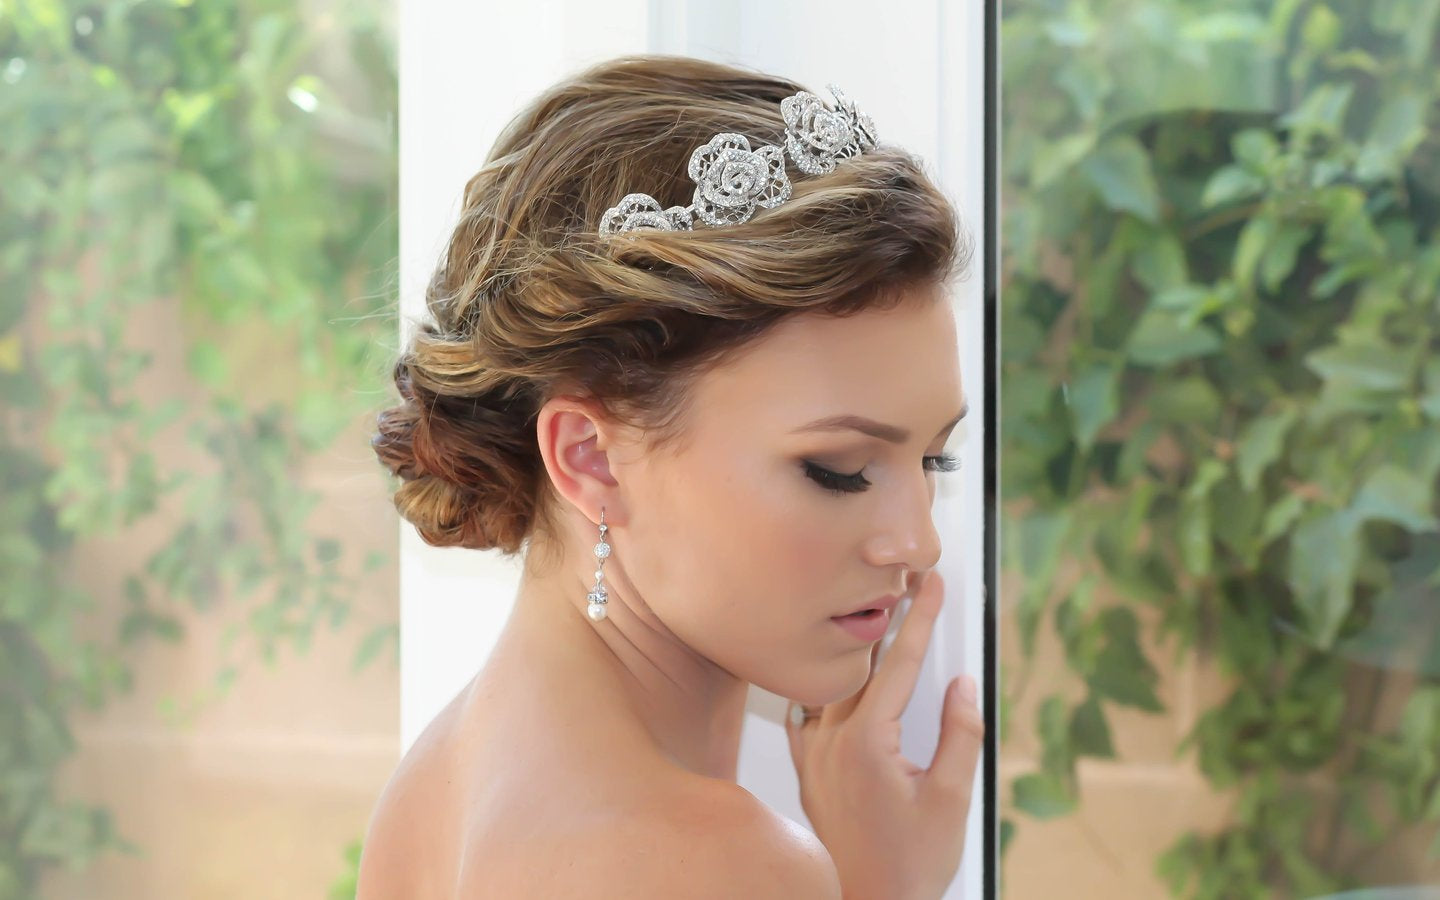 Bridal Headpiece with Veil - Bride Glamor